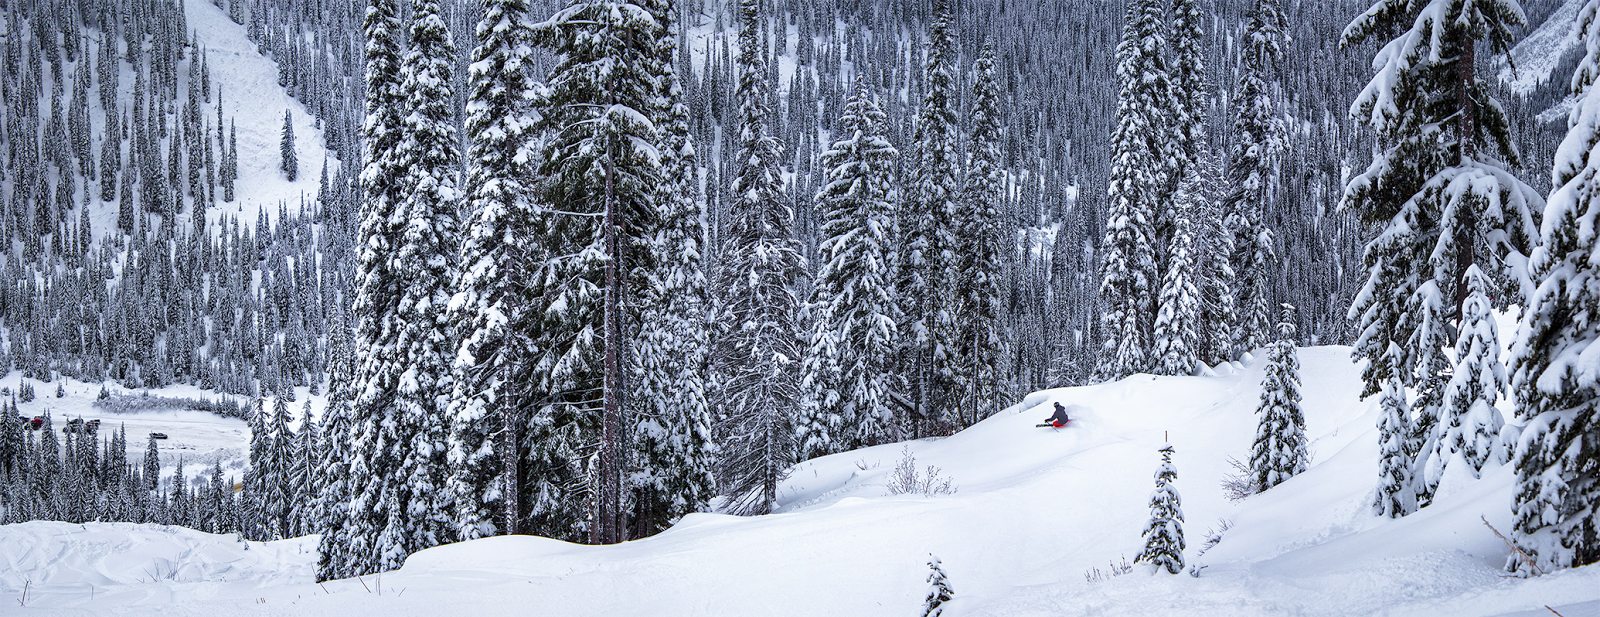 exploring-canada-winter-skiing-kootenay